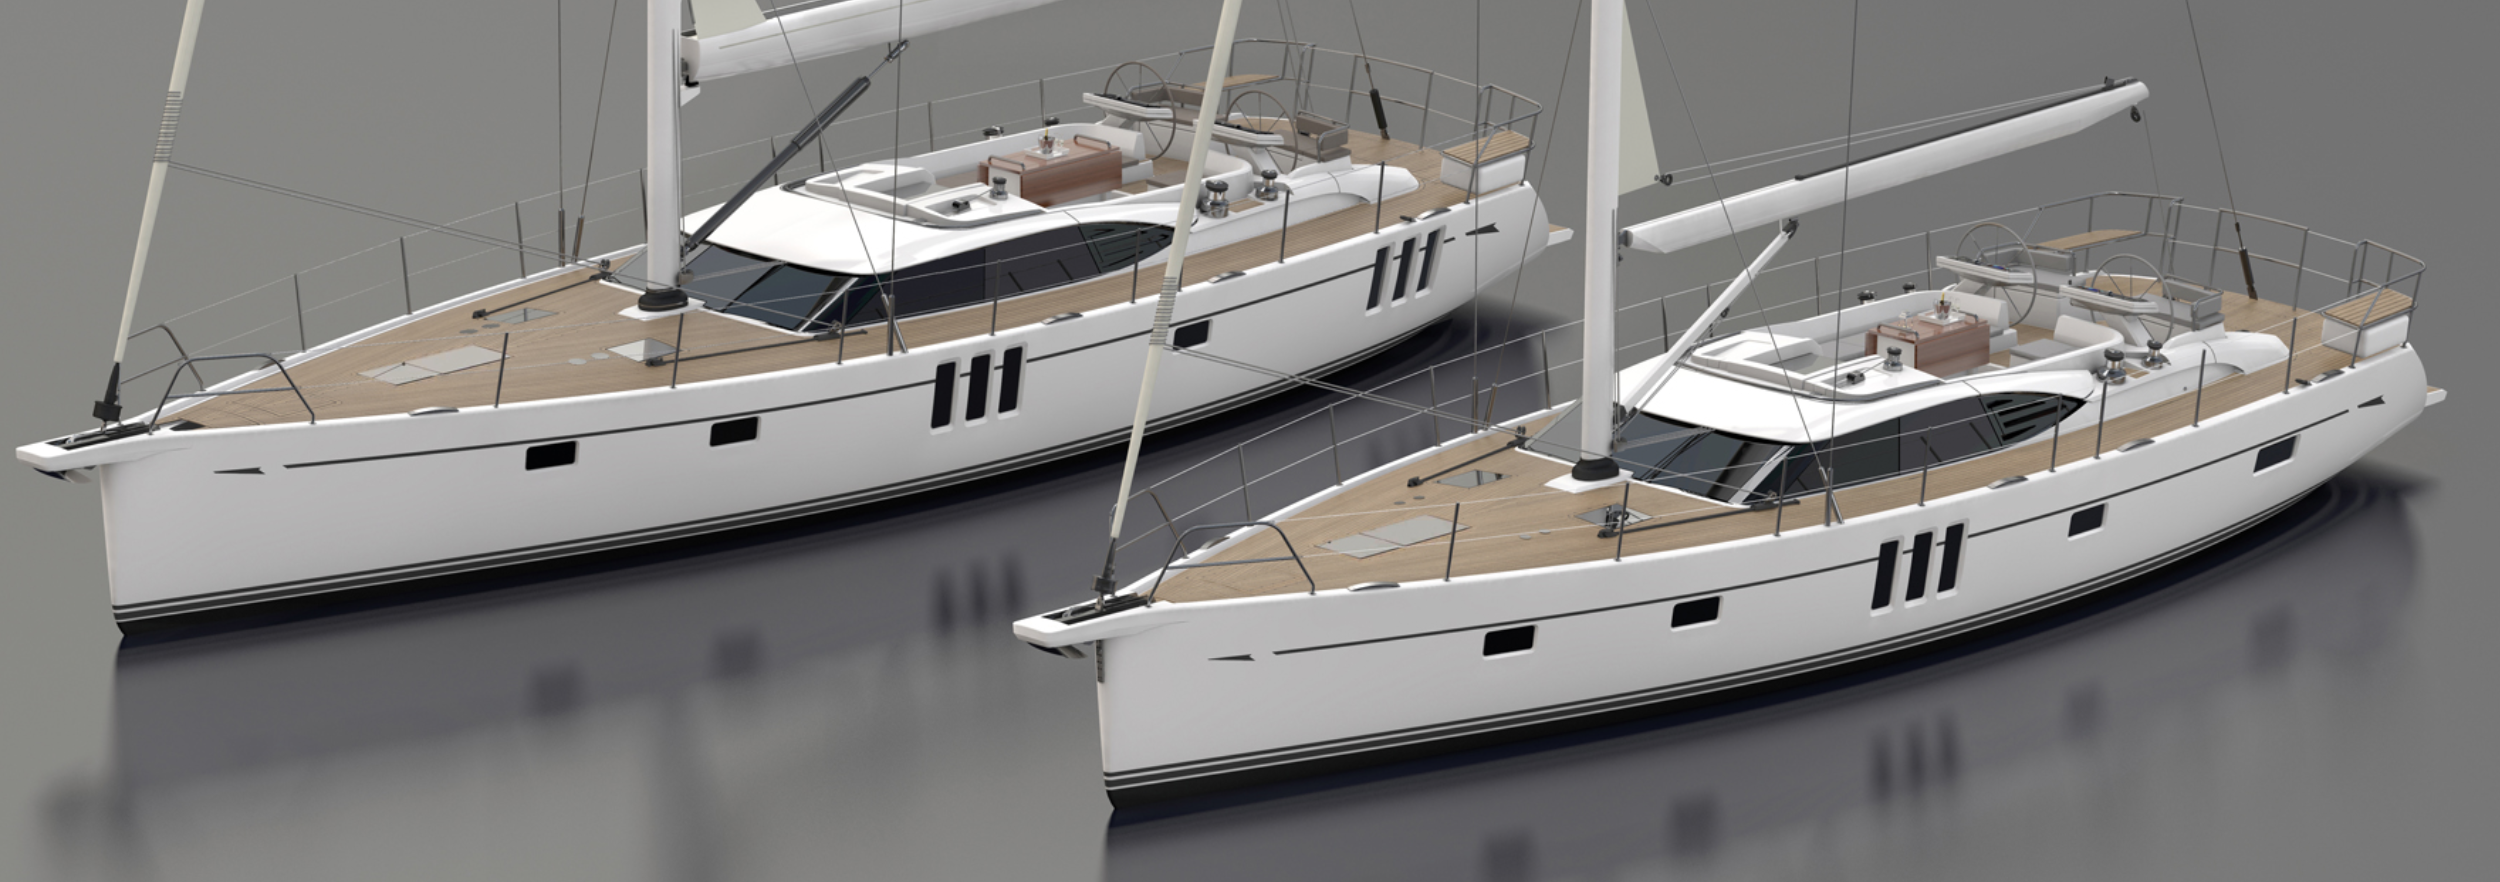 Oyster 565 and 595 - a little more better. Illustrations by: Oyster Yachts.